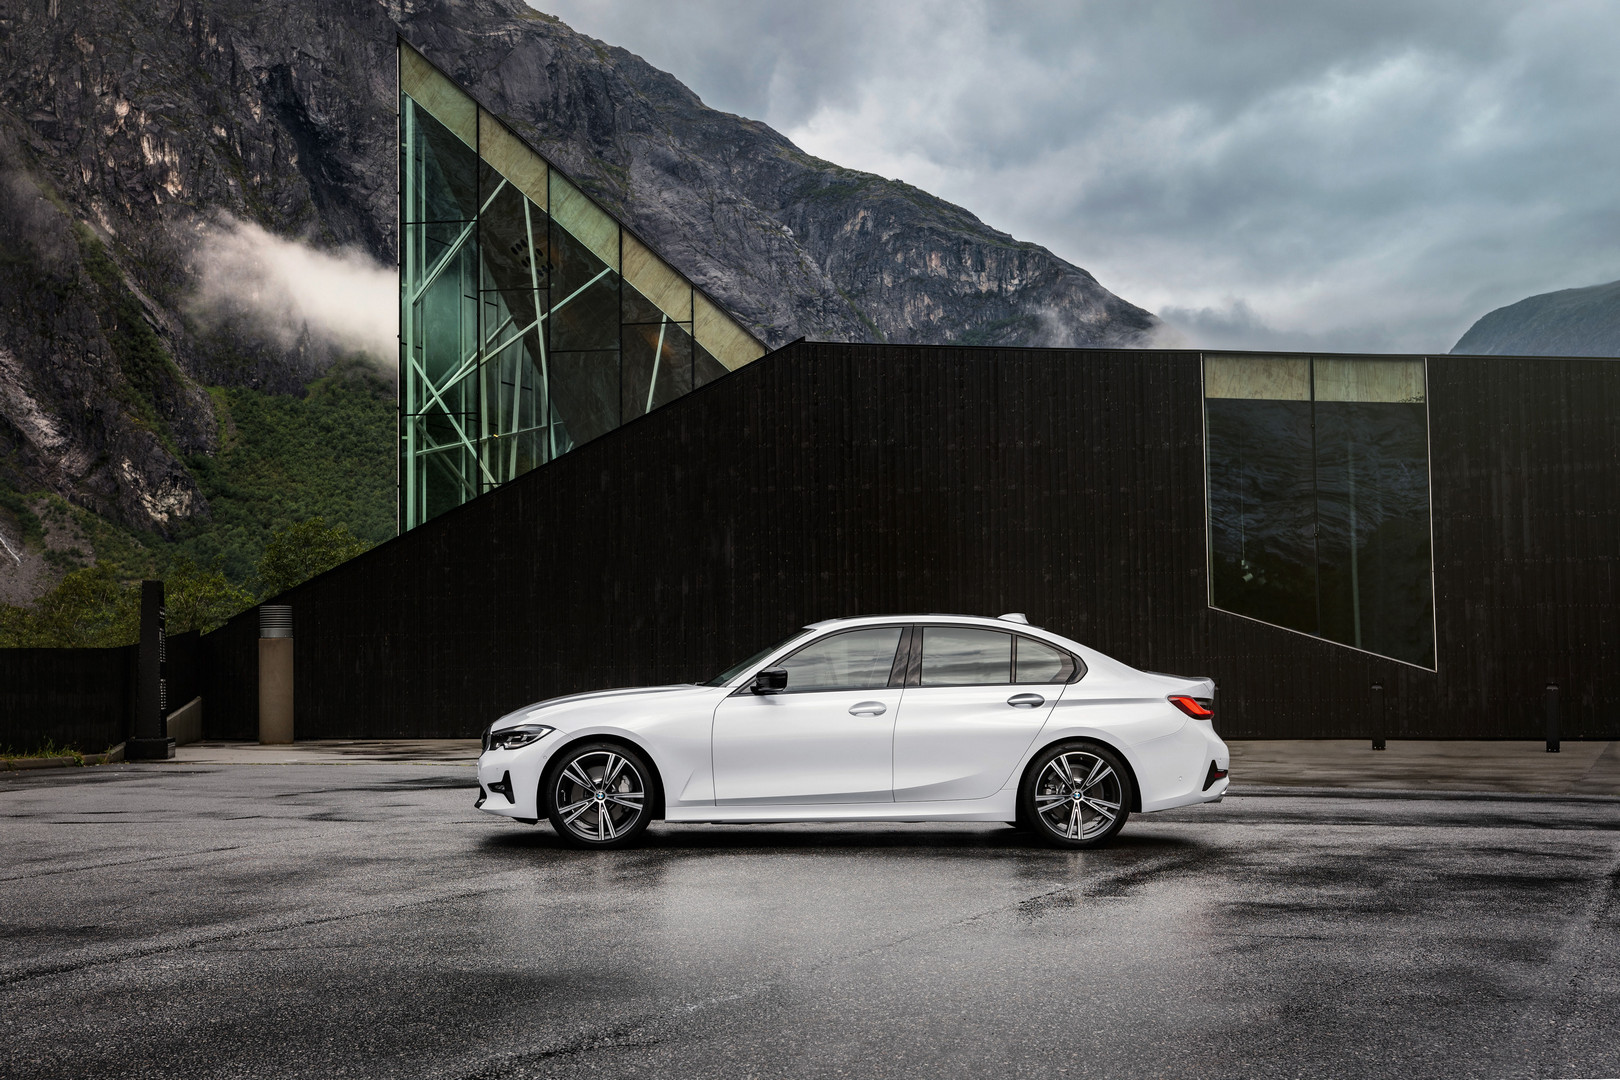 2019 BMW 3 Series G20 Side View